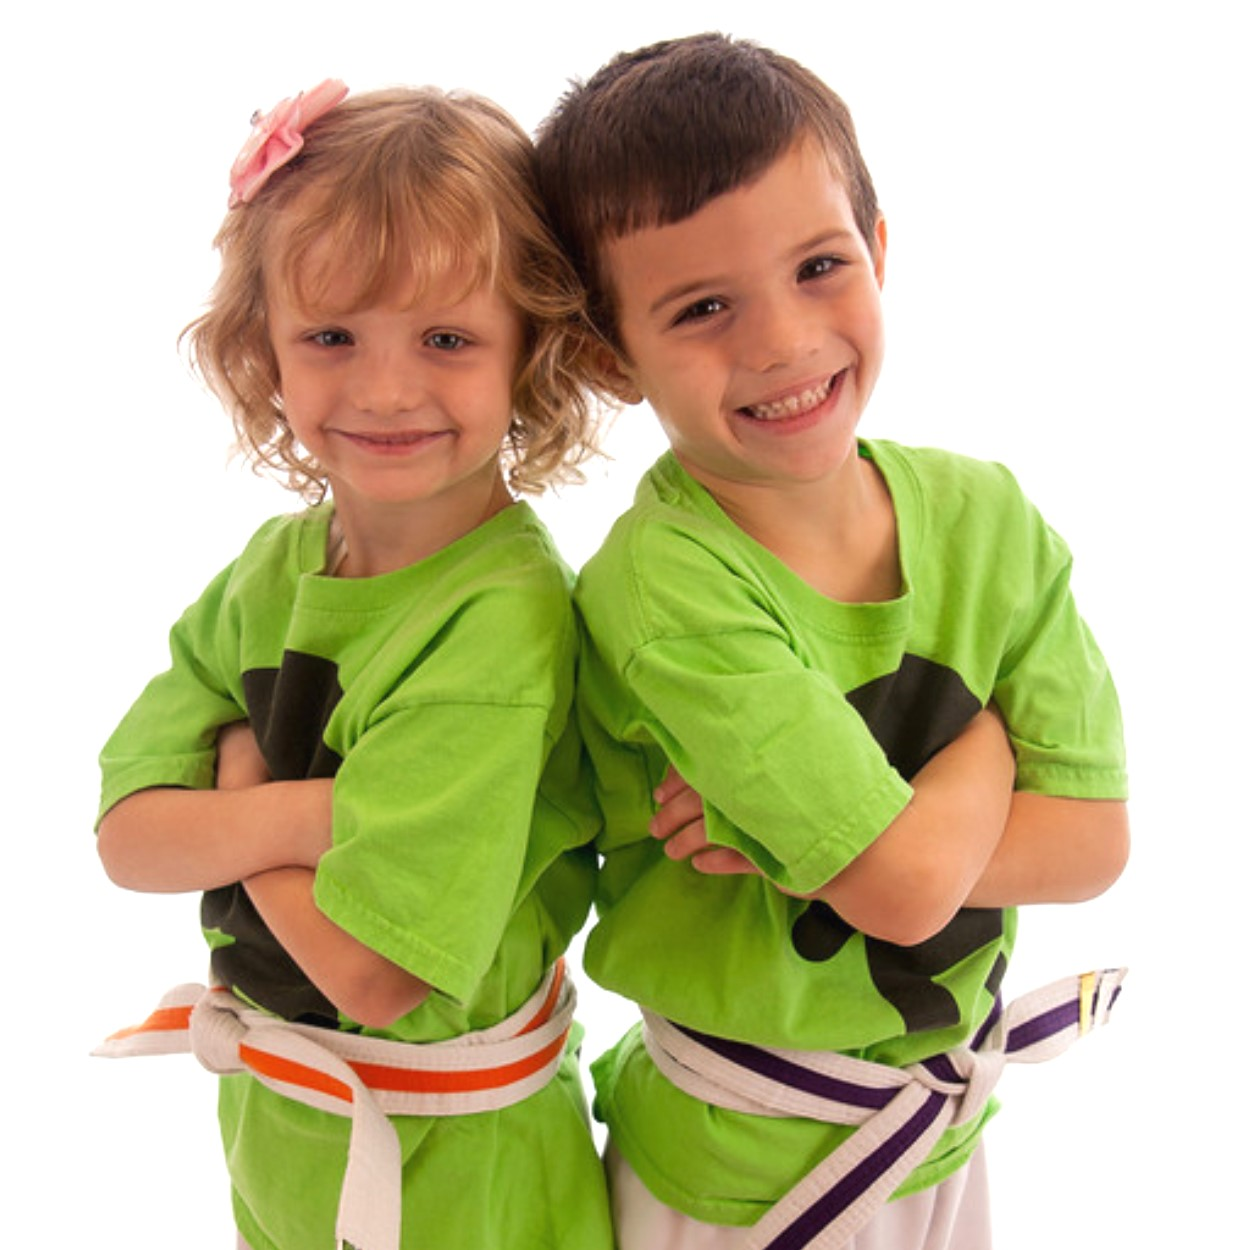 kids martial arts in oakland, NJ